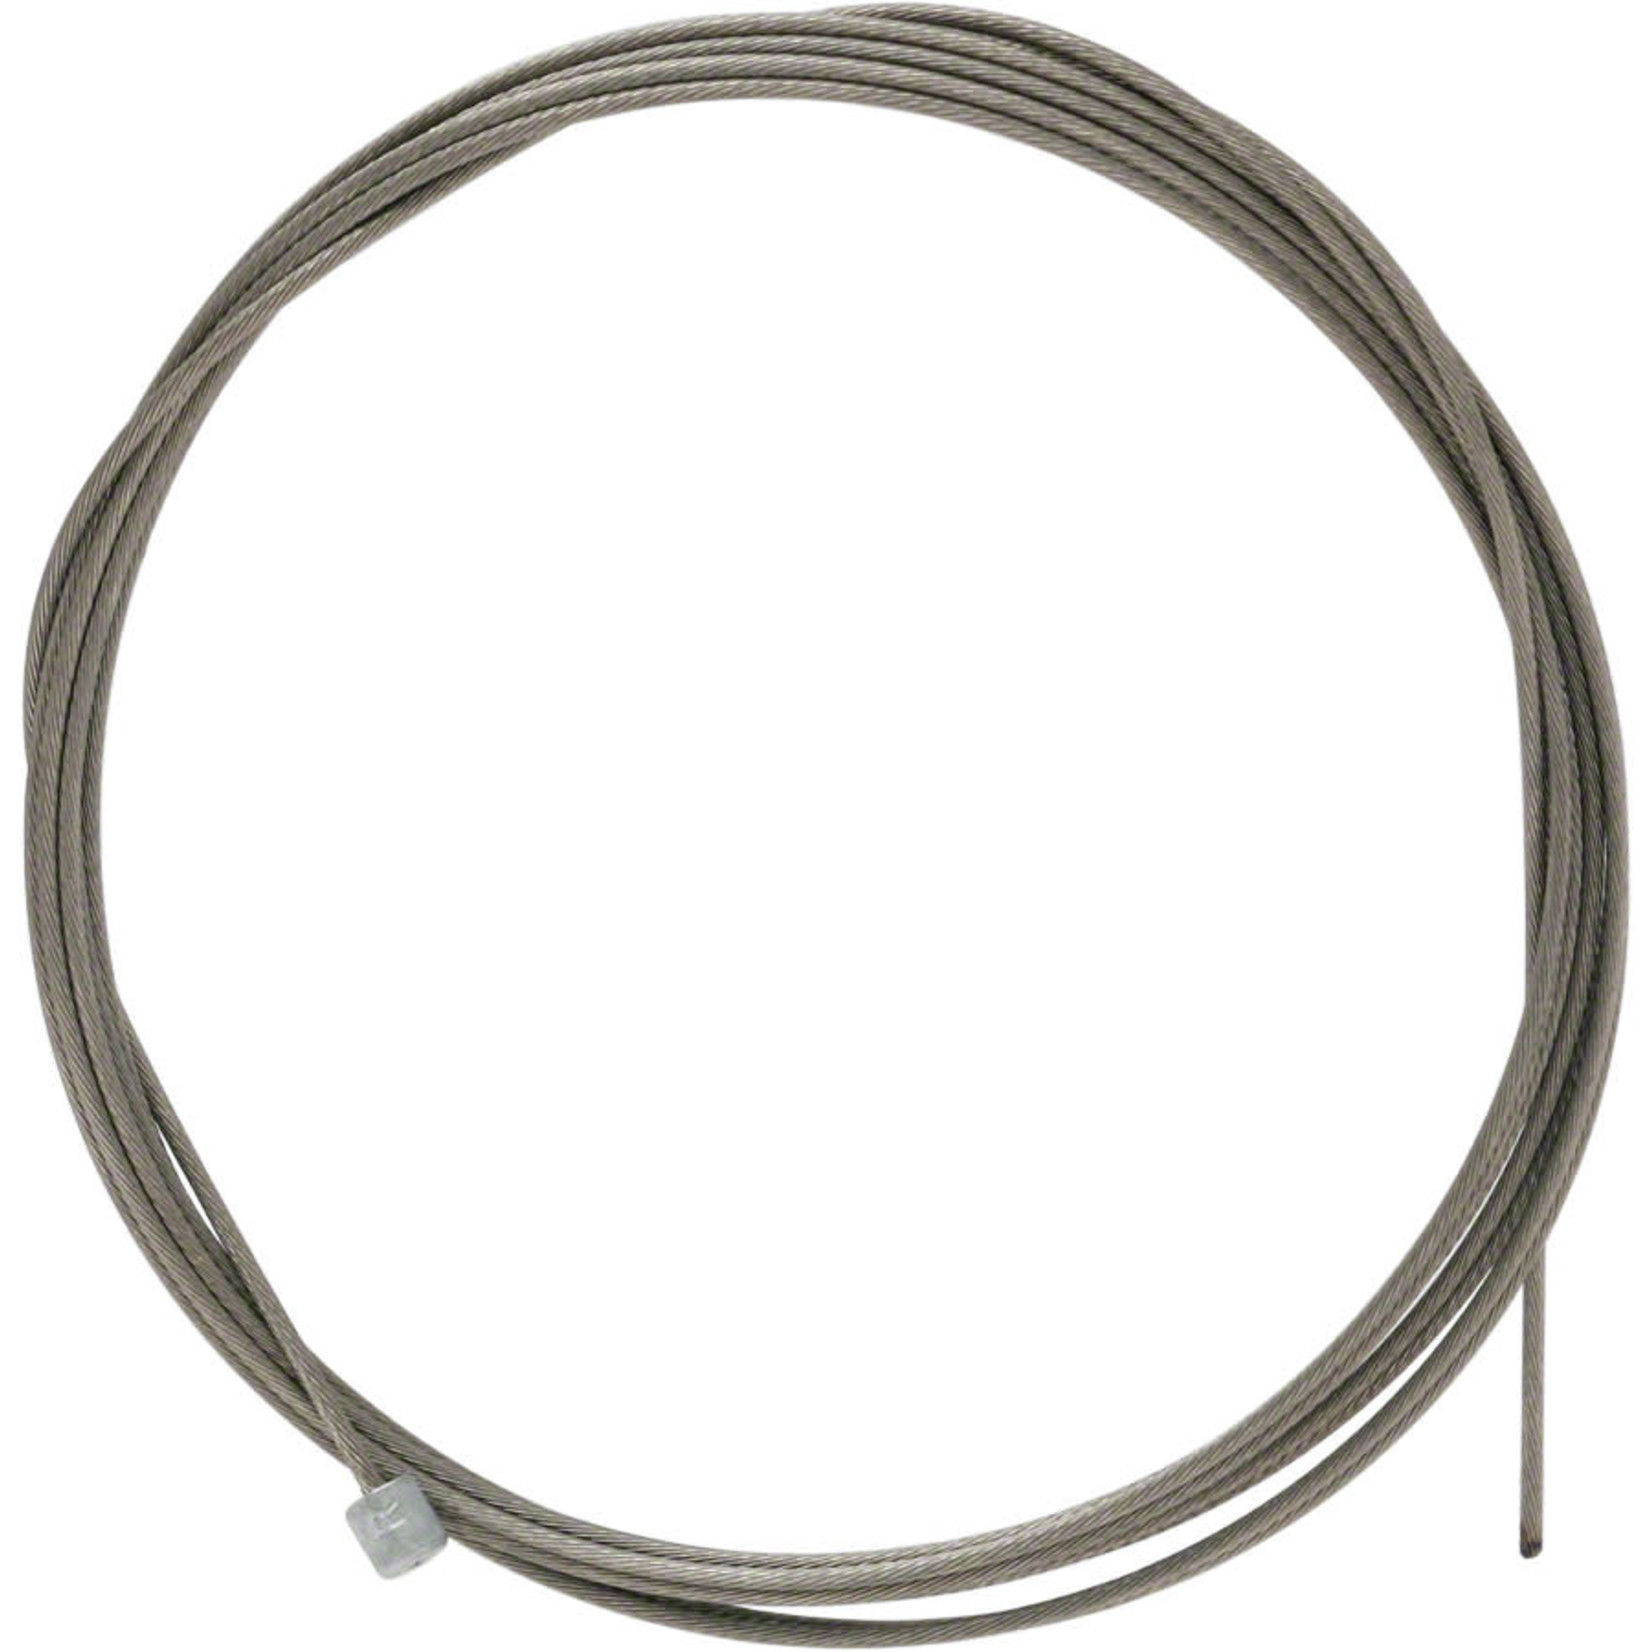 Shimano Shimano Stainless Derailleur Cable 1.2 x 2100mm